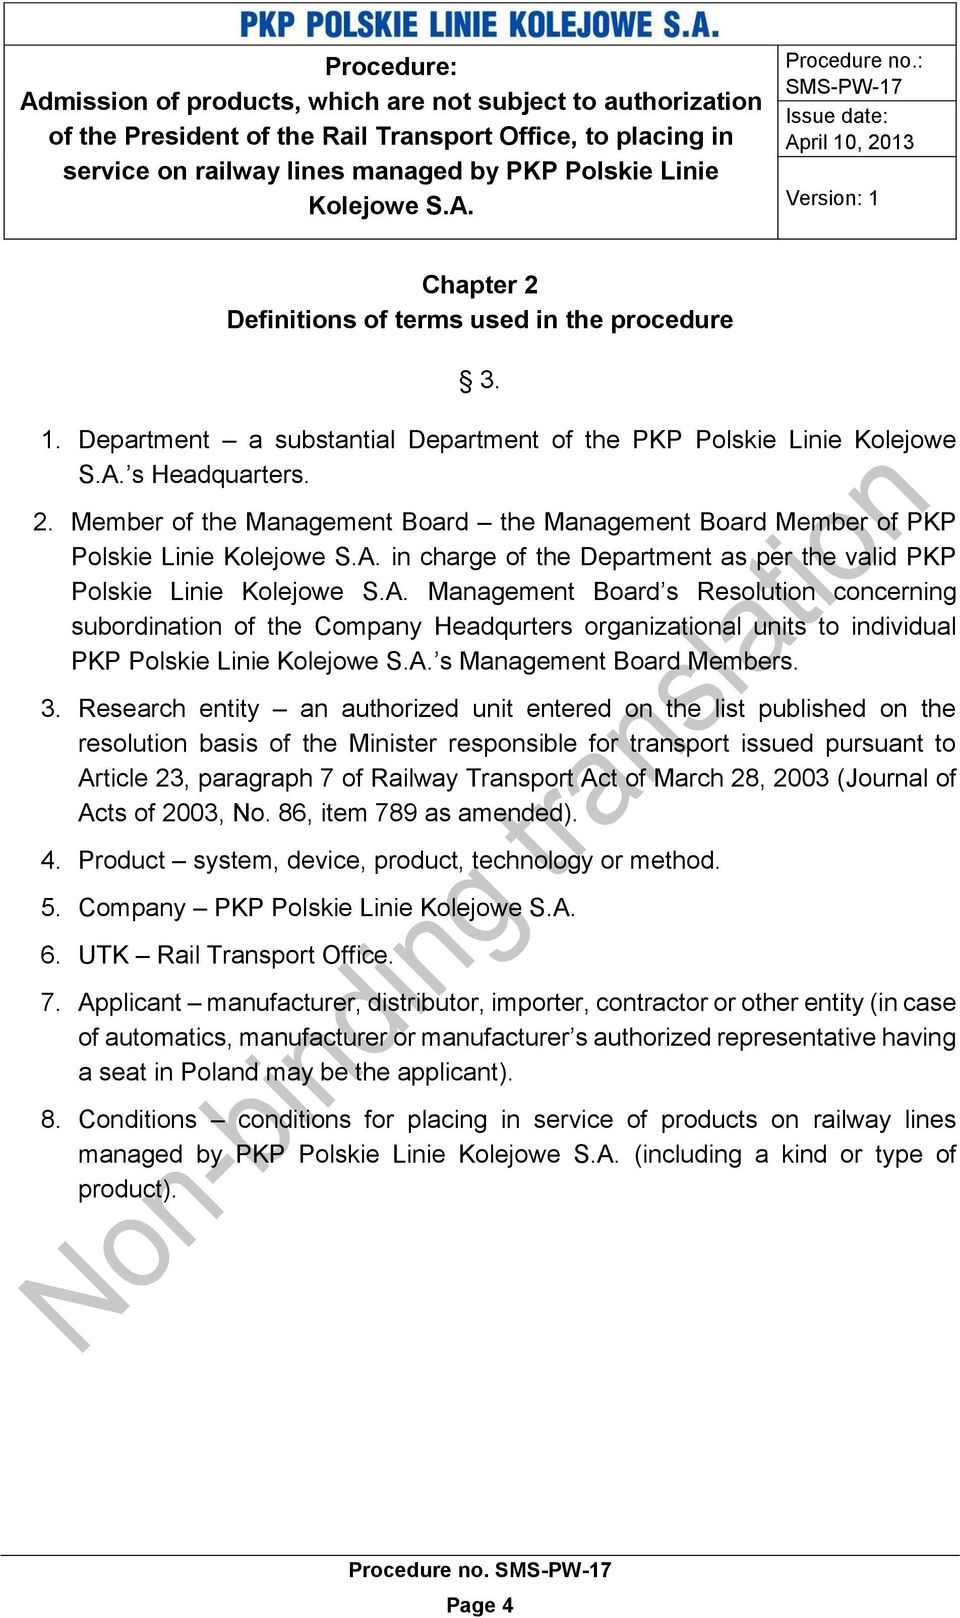 Member of the Management Board the Management Board Member of PKP Polskie Linie in charge of the Department as per the valid PKP Polskie Linie Management Board s Resolution concerning subordination